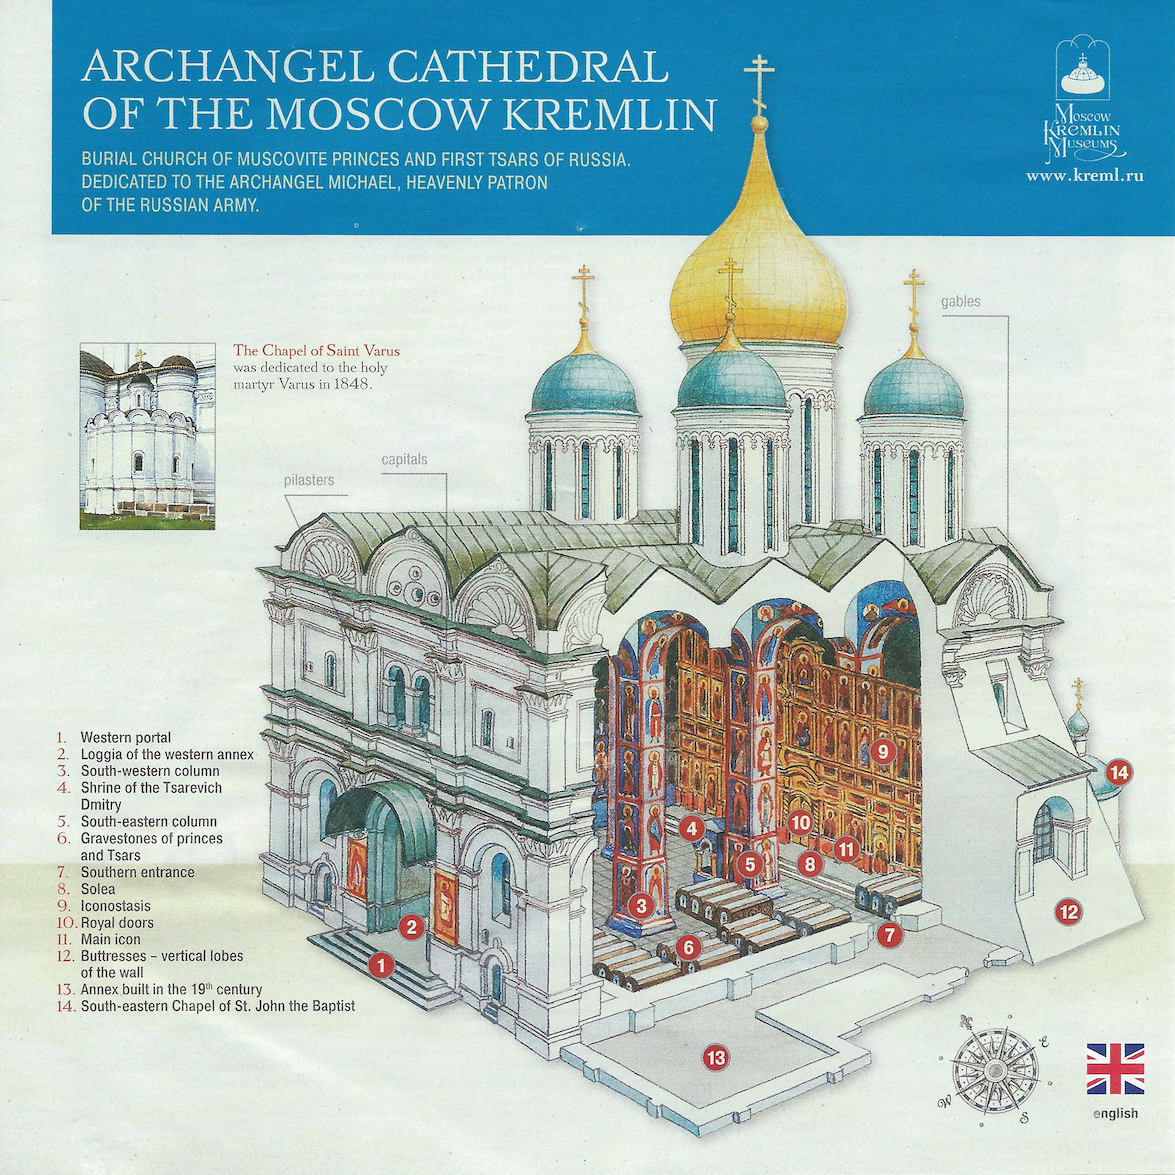 Archangel Cathedral Kremlin